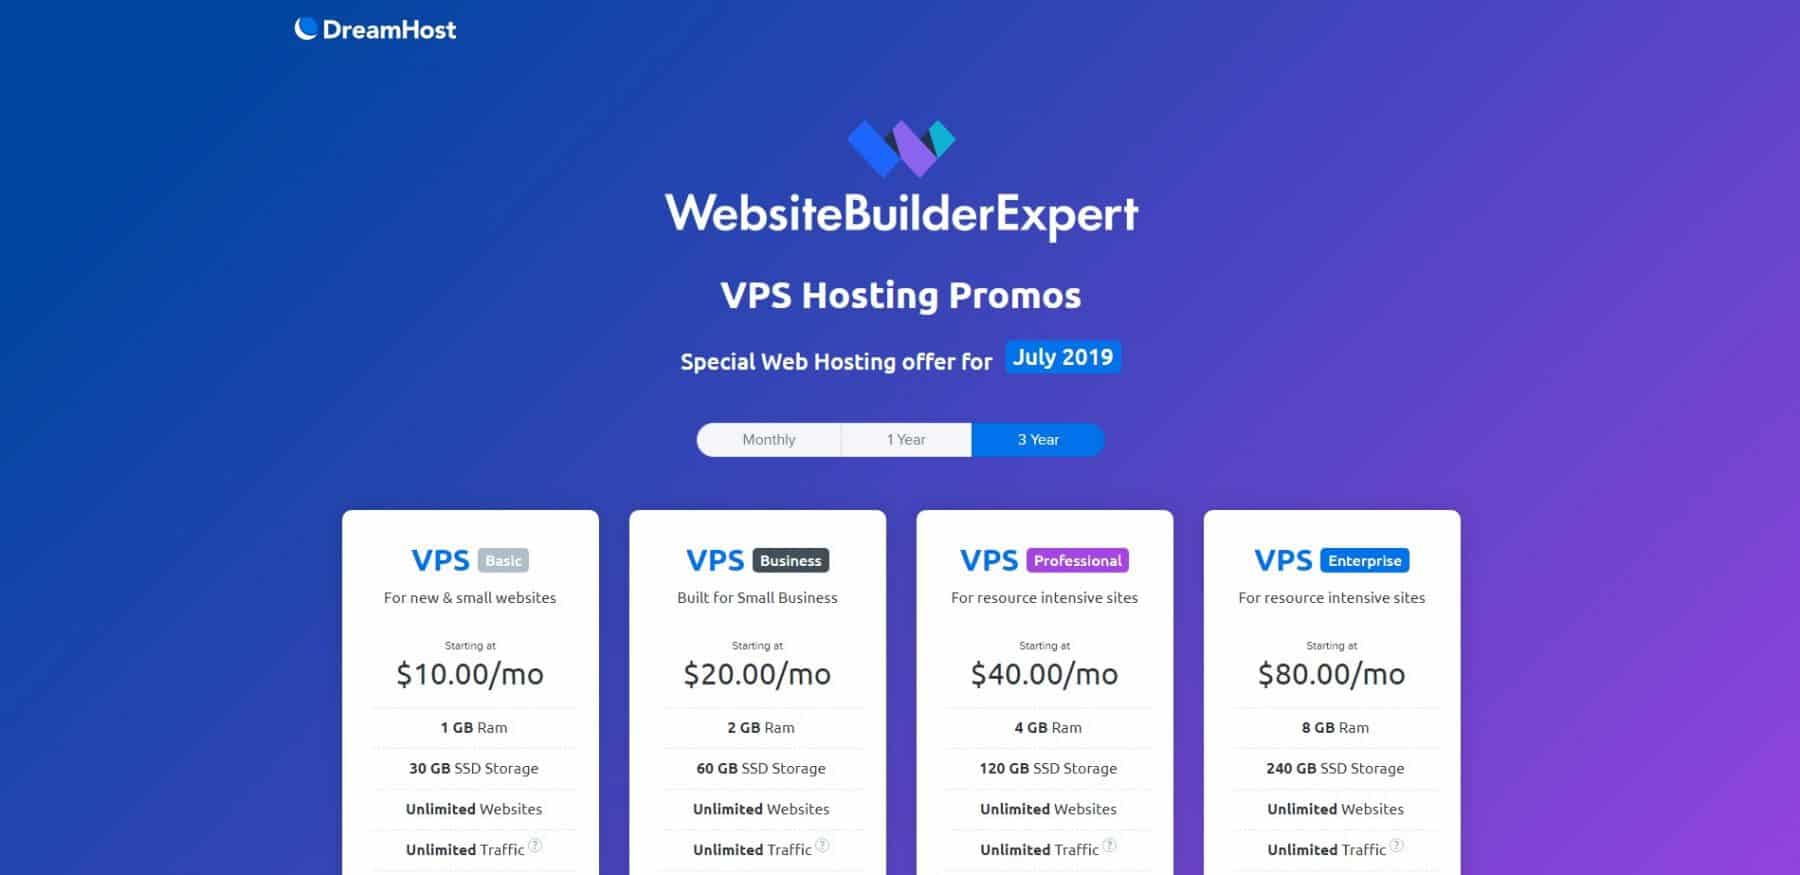 dreamhost vps hosting